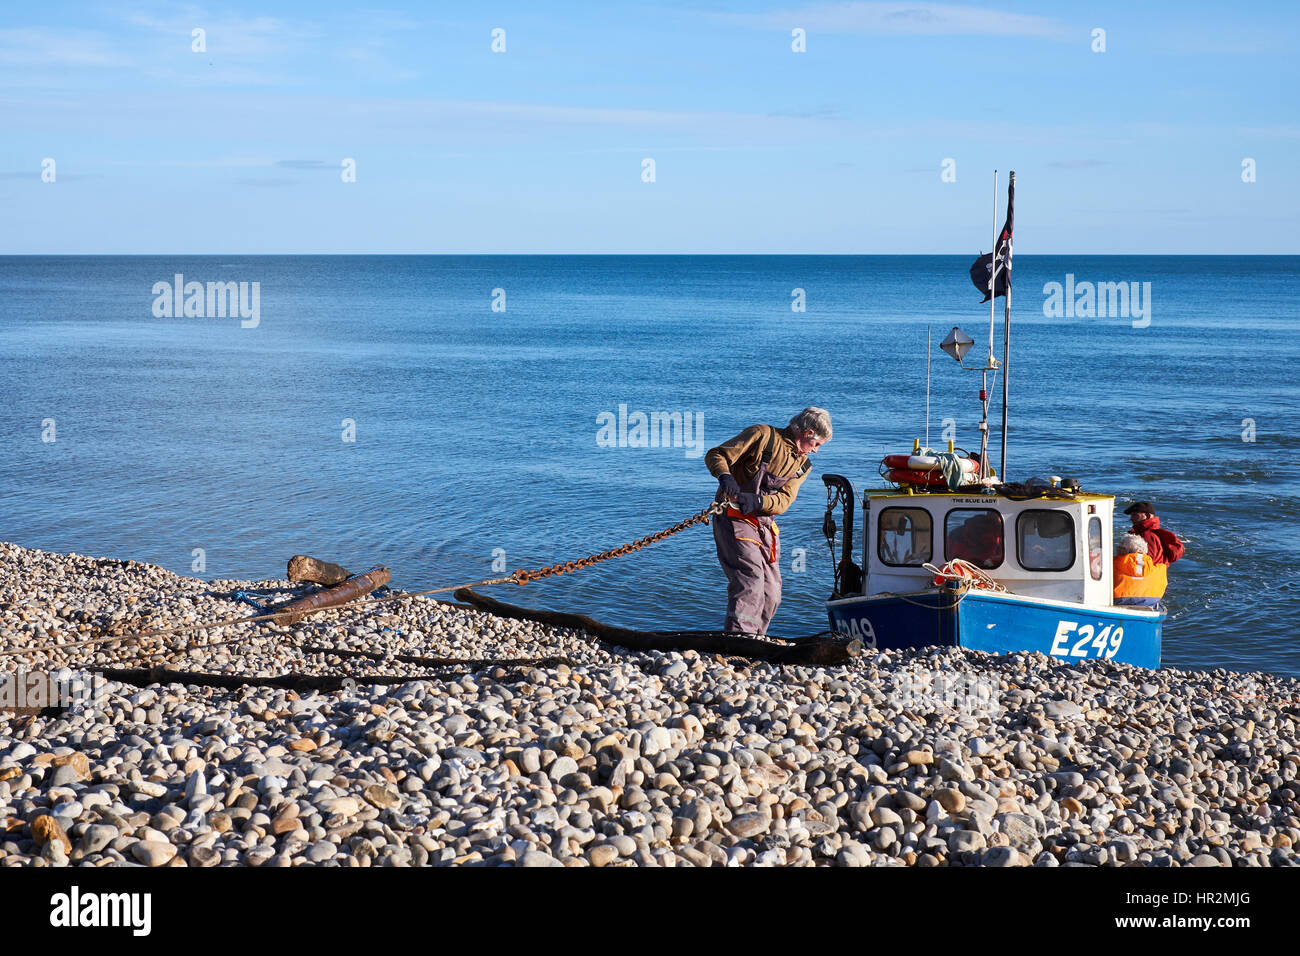 Hauling a fishing boat back on to the shore at Beer in Devon, U.K. - Stock Image